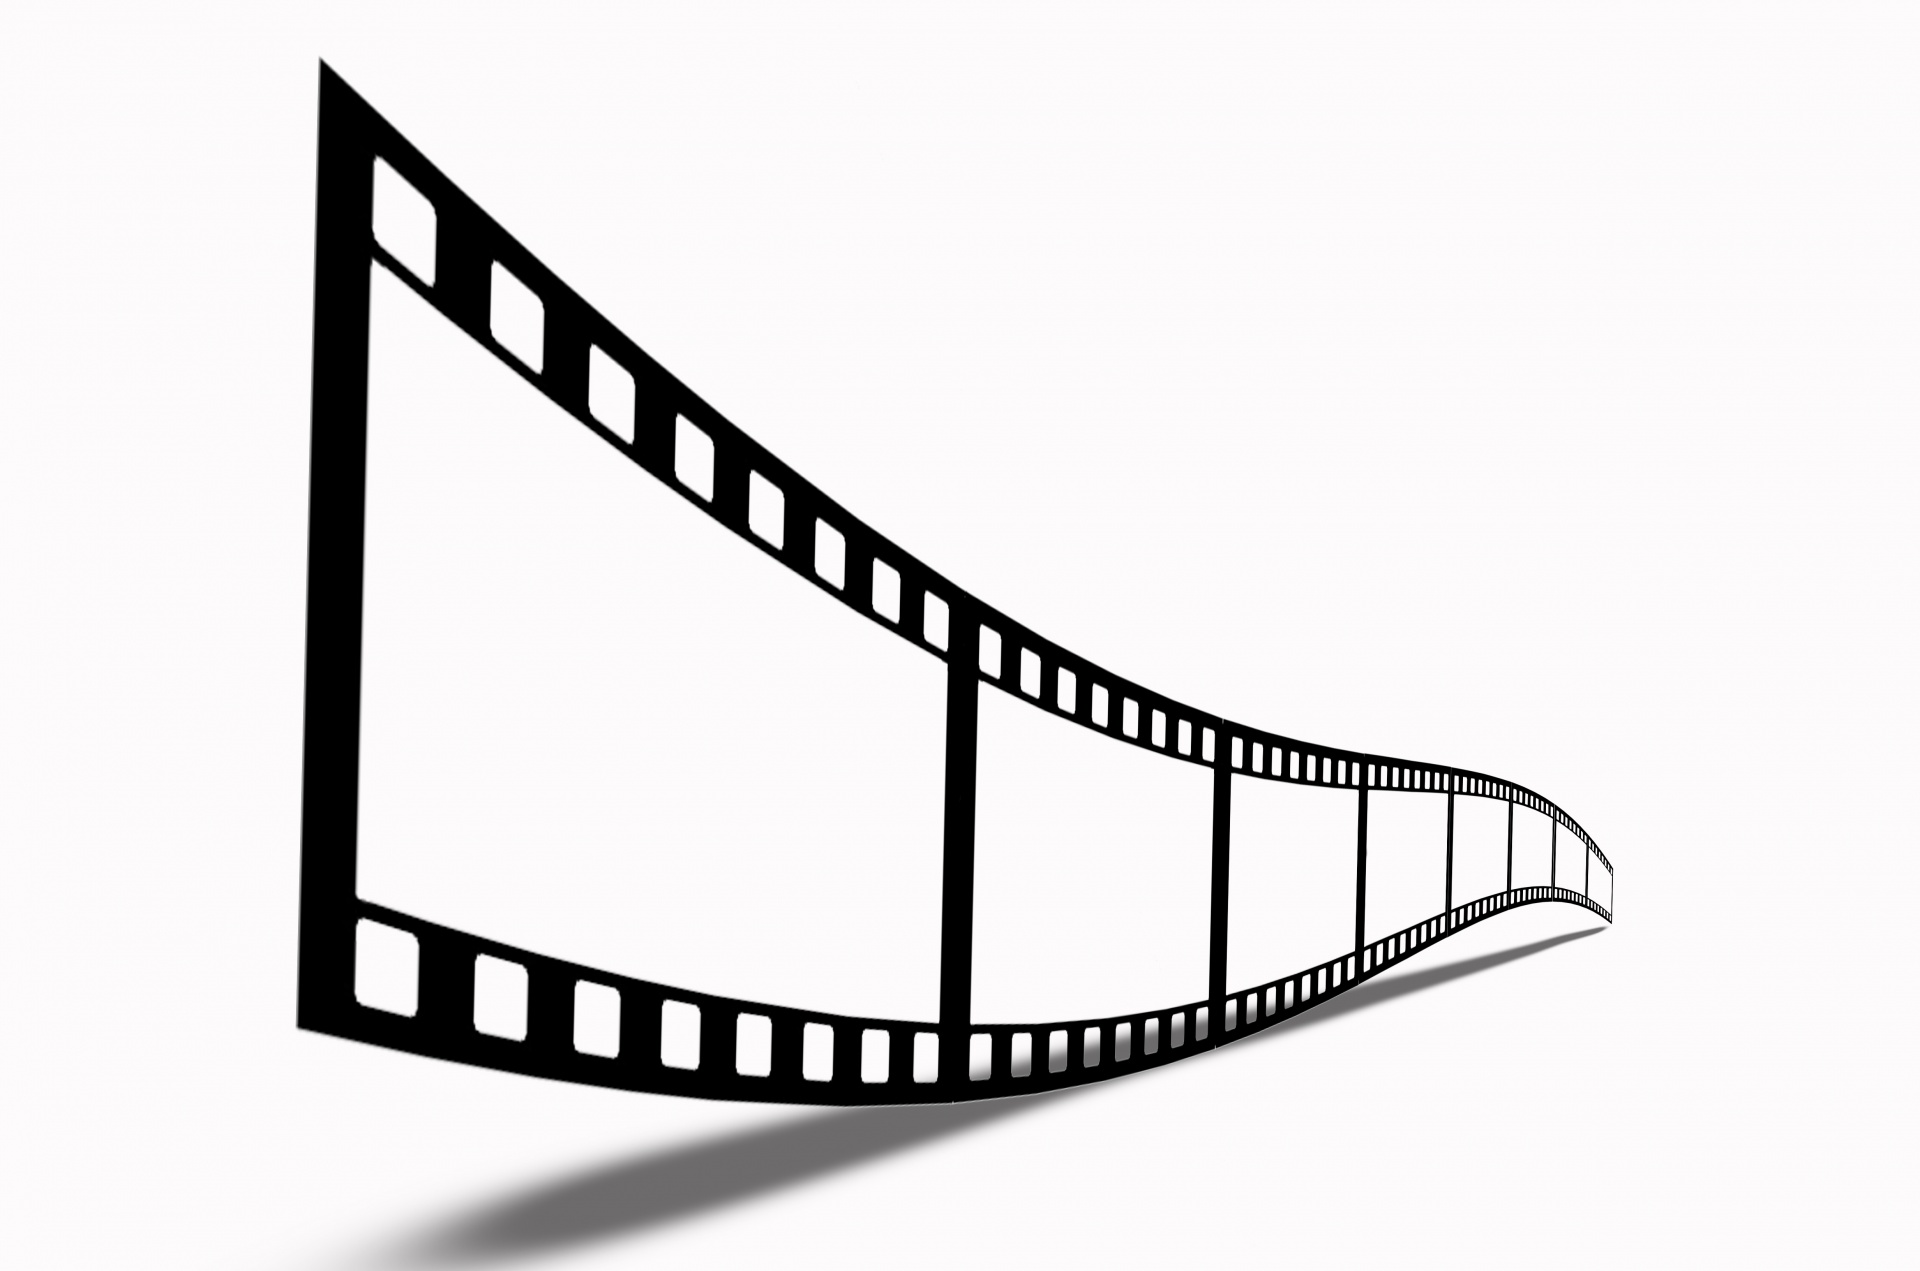 1920x1271 Film Strip Clip Art Free Pictures